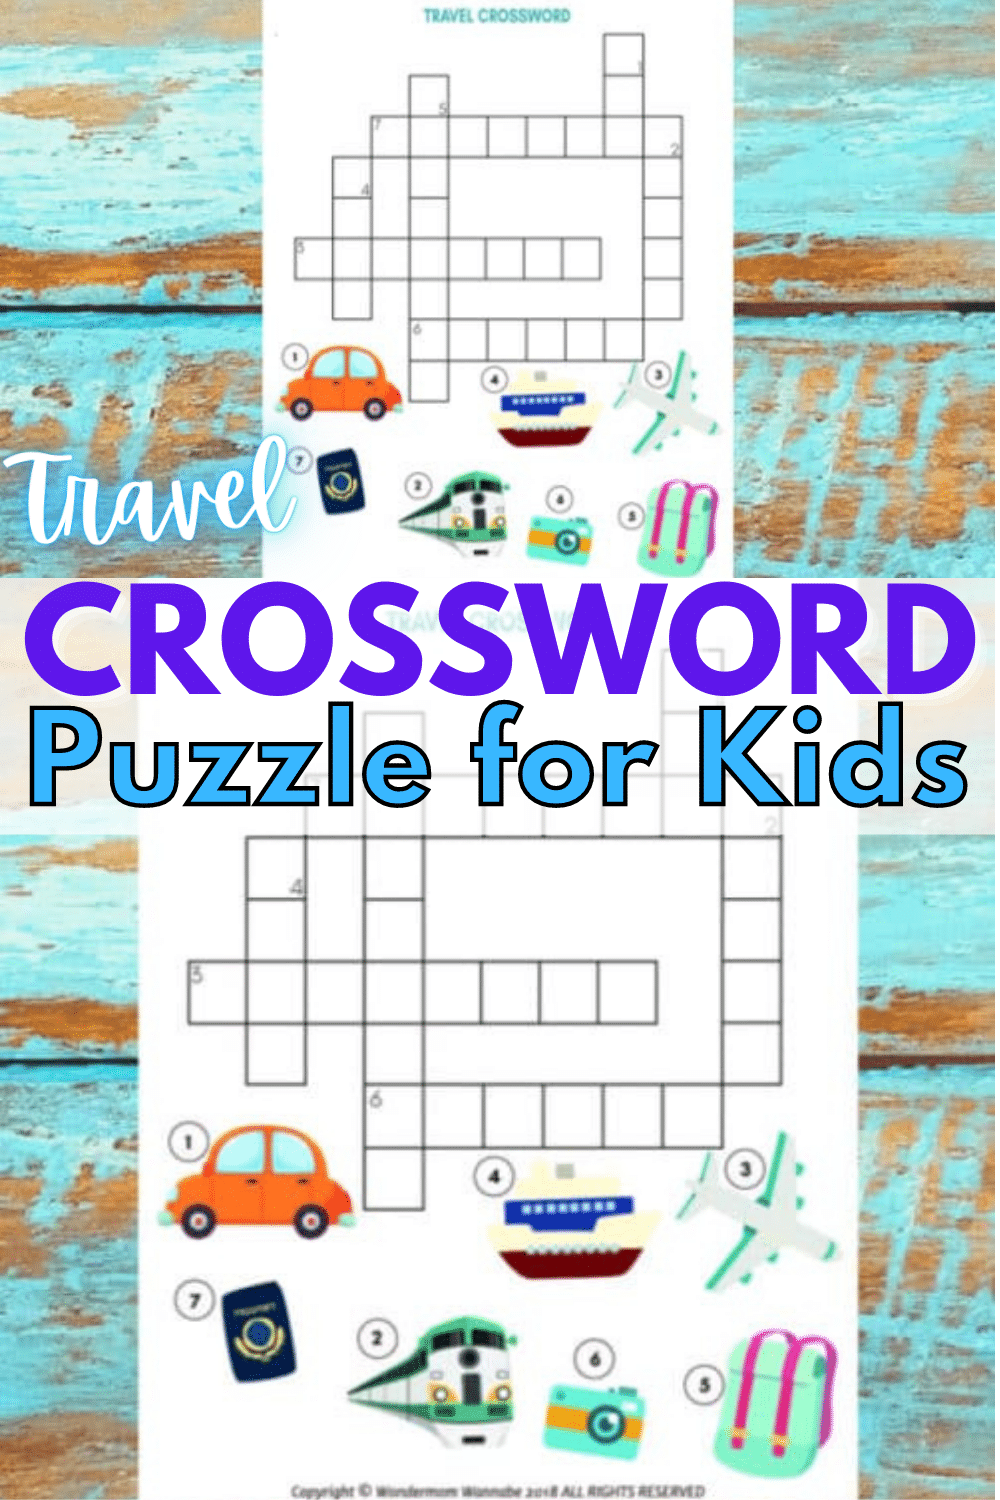 A fun printable travel crossword puzzle for kids is the perfect children's activity to complete on a family road trip or before a big vacation. #crosswordpuzzle #printables #familytravel via @wondermomwannab